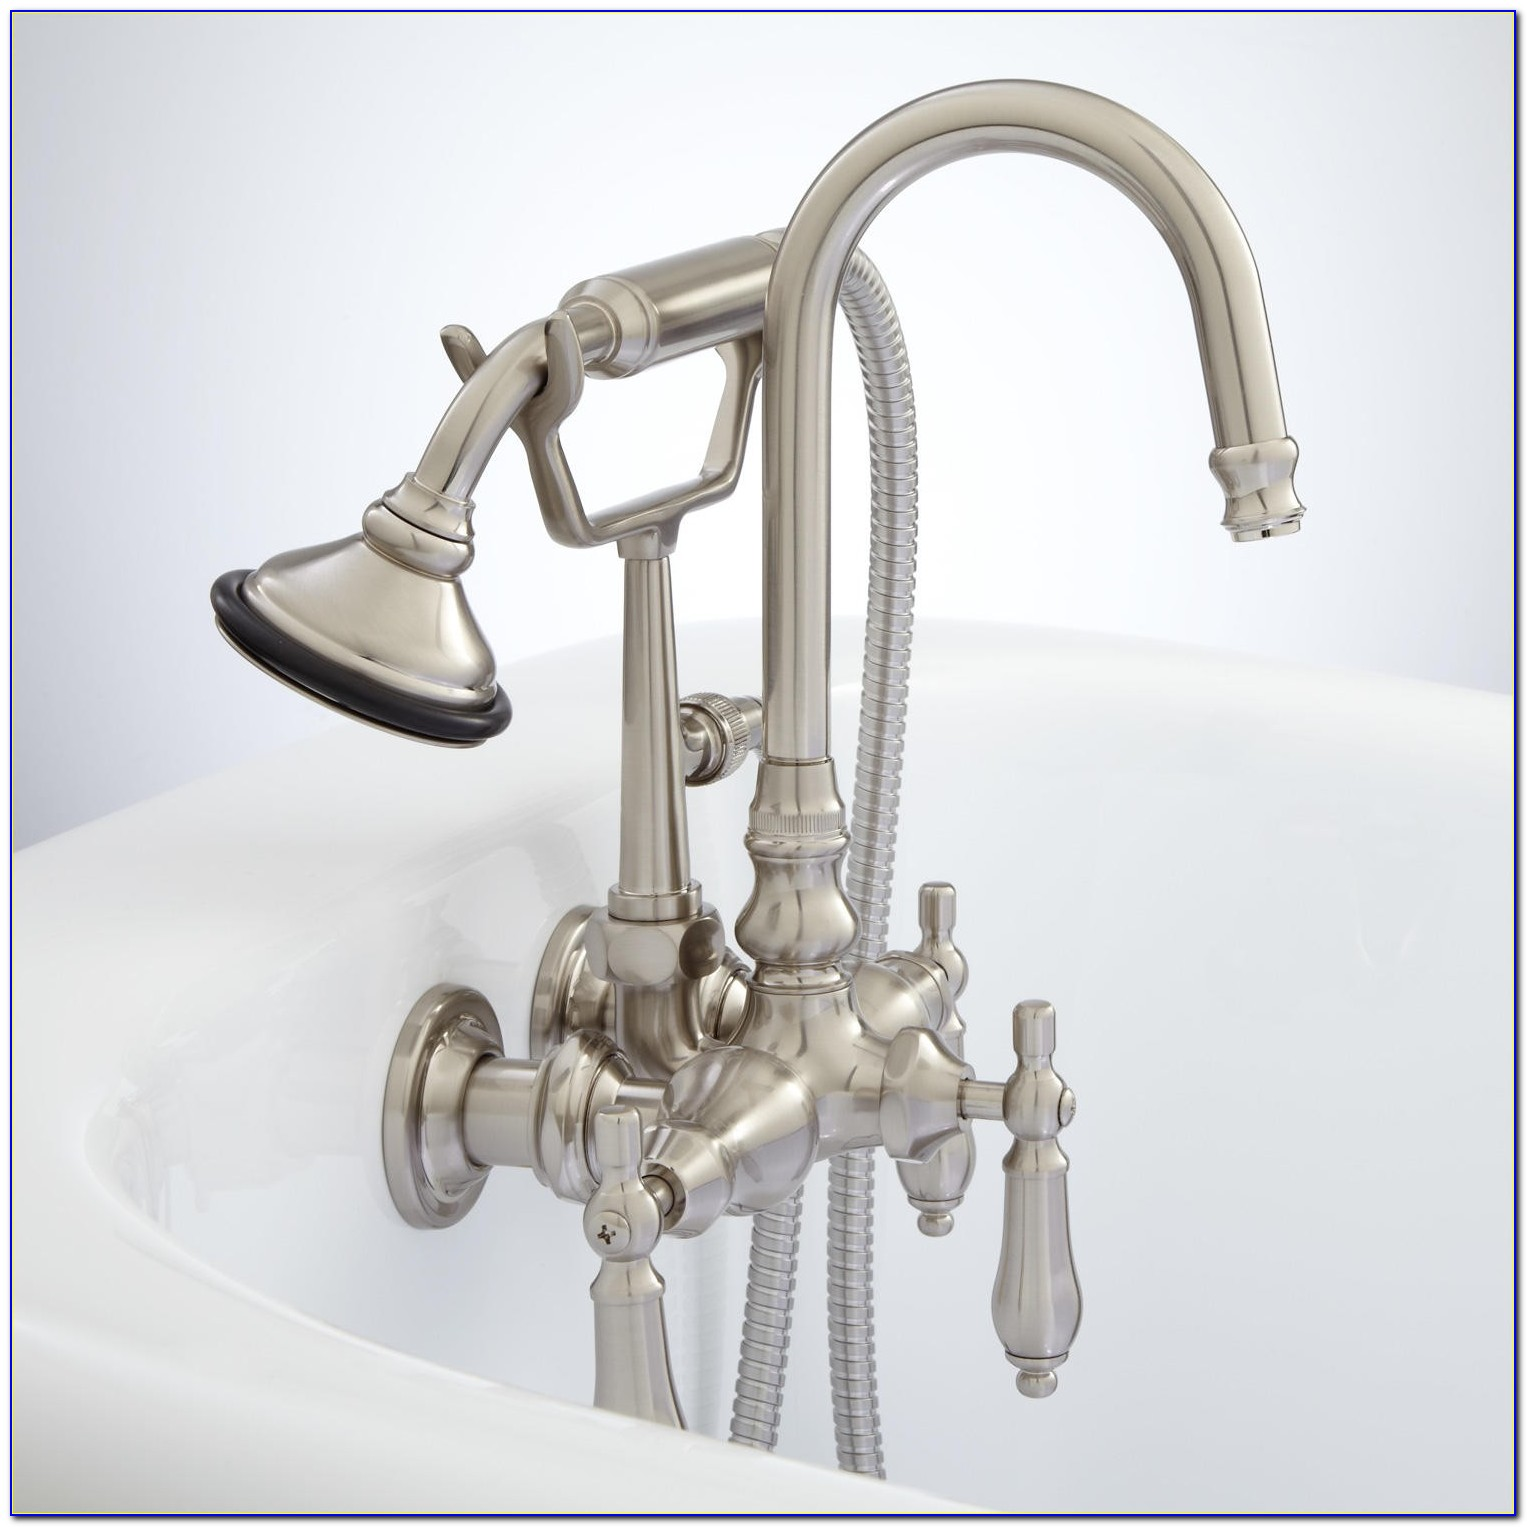 Laundry Tub Faucet With Sprayer